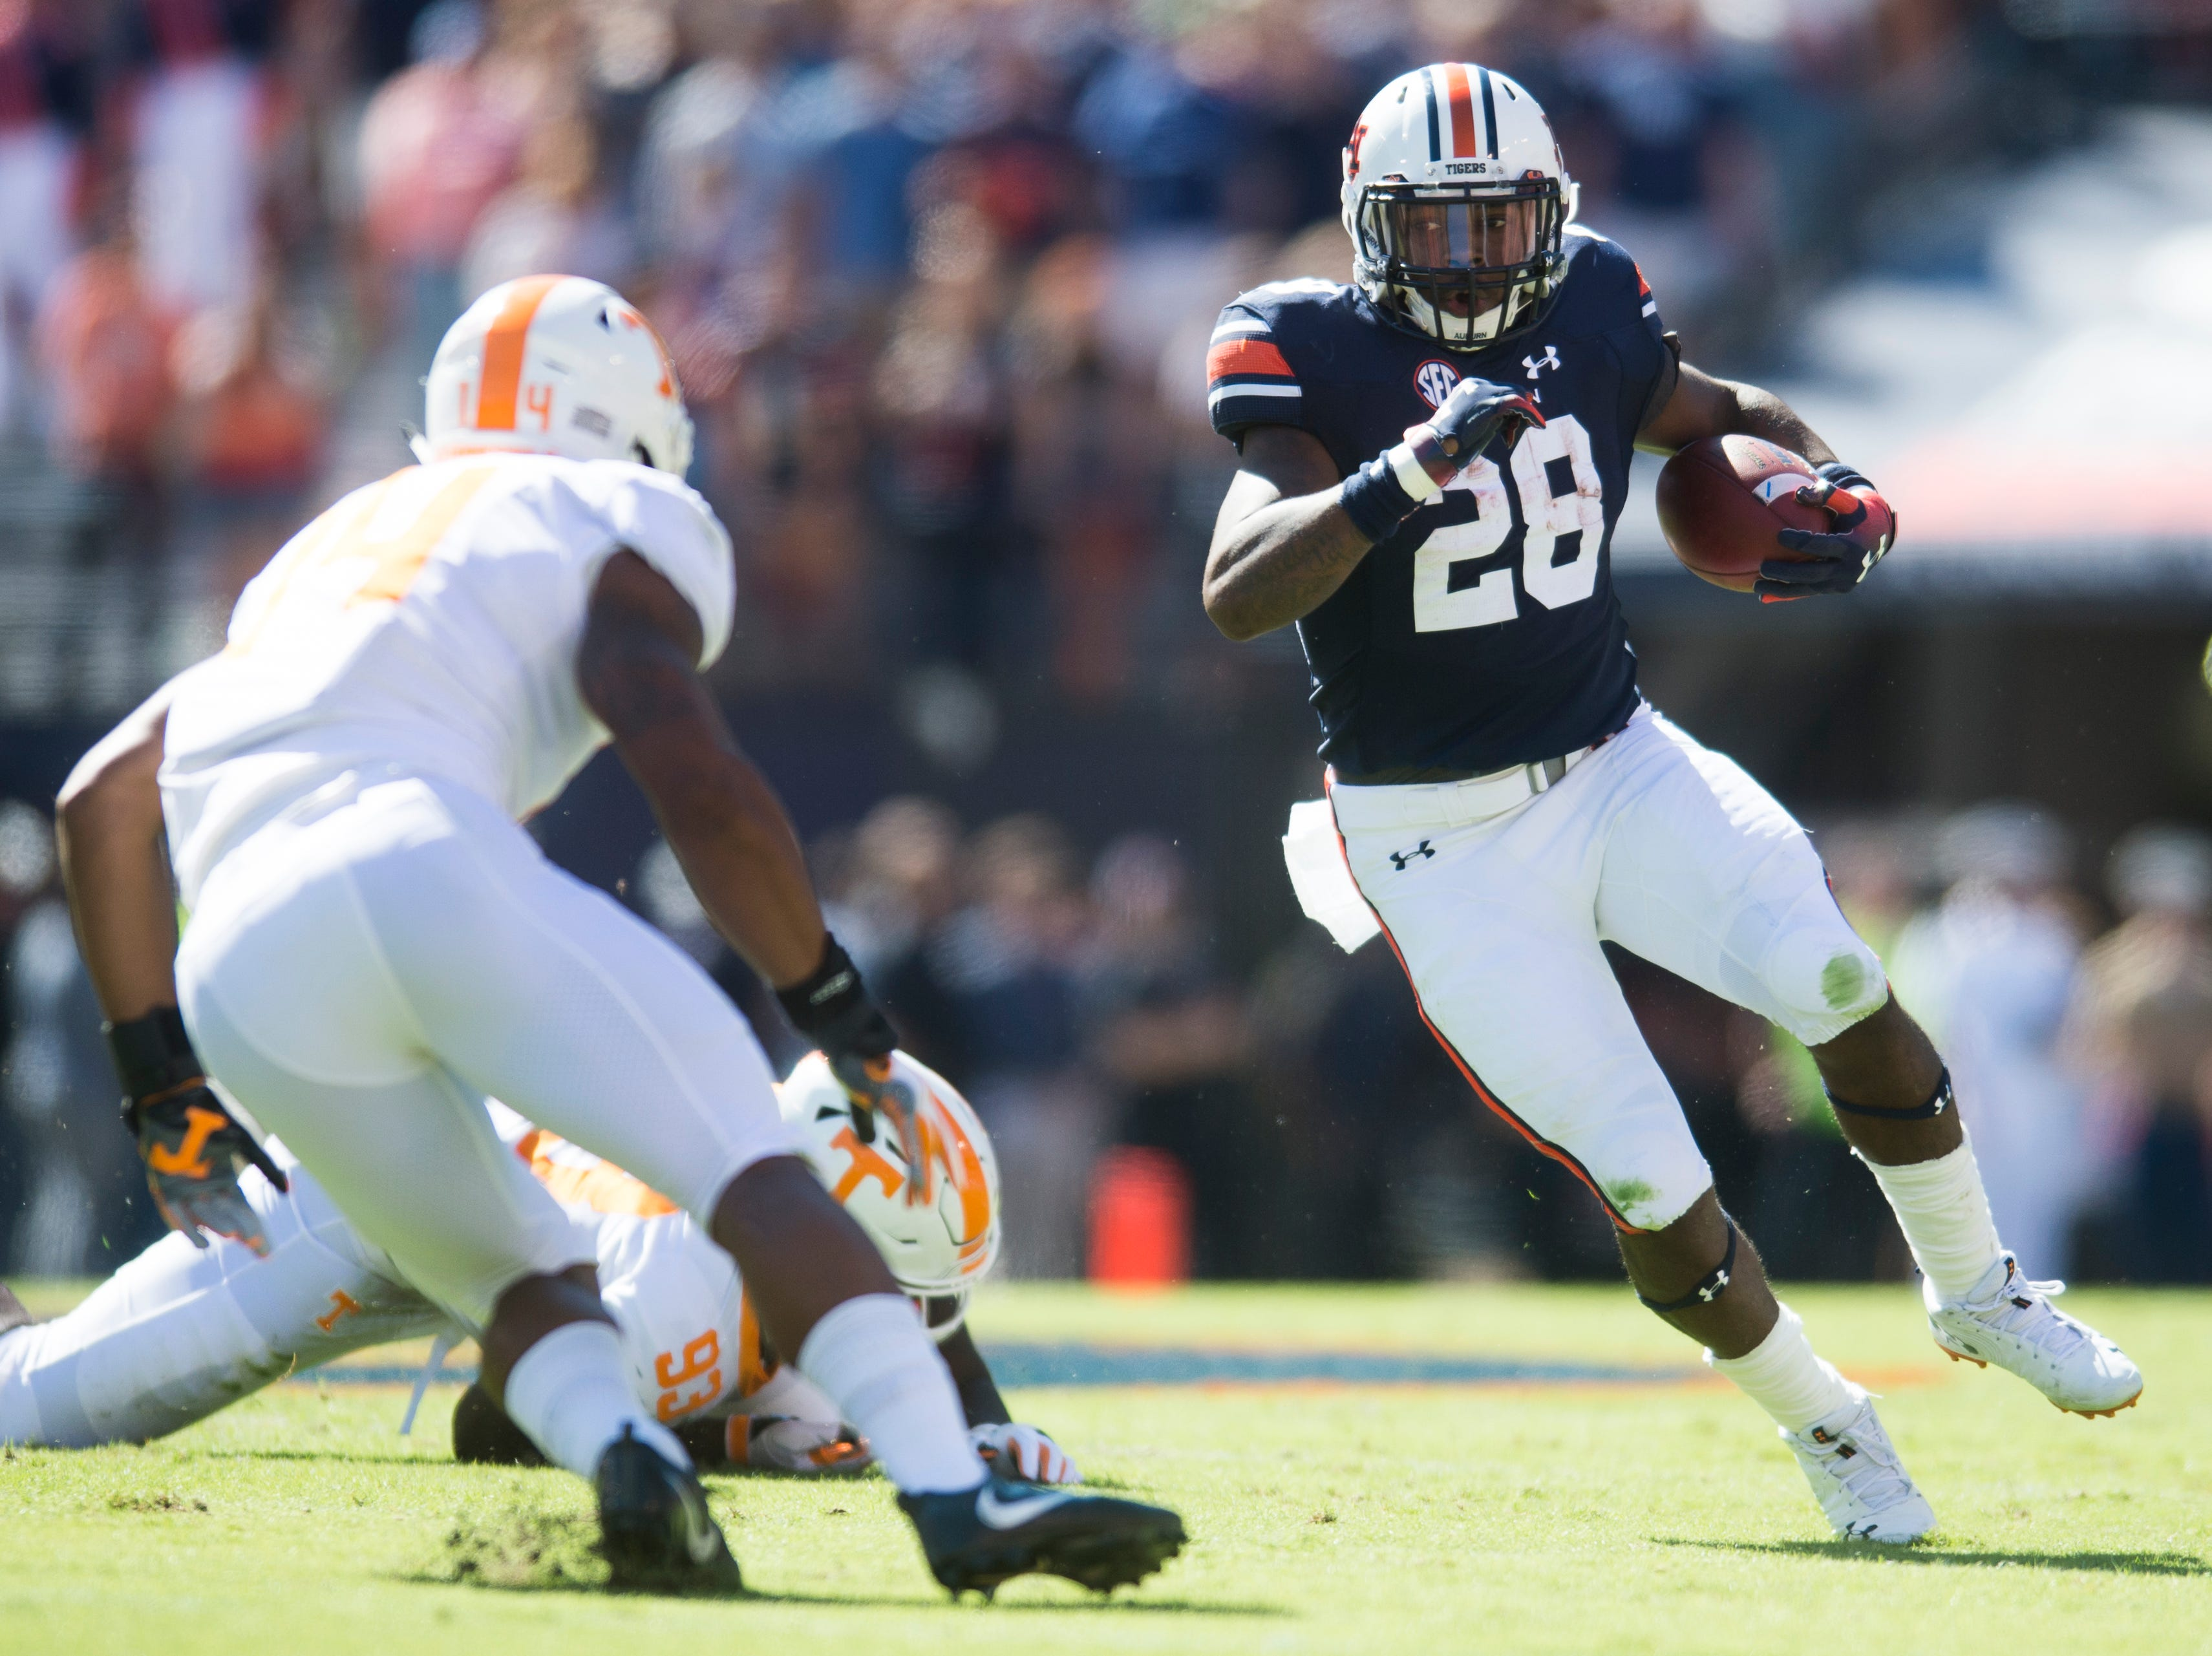 Auburn running back JaTarvious Whitlow (28) runs past the Tennessee defense during a game between Tennessee and Auburn at Jordan-Hare Stadium in Auburn, Alabama on Saturday, October 13, 2018.